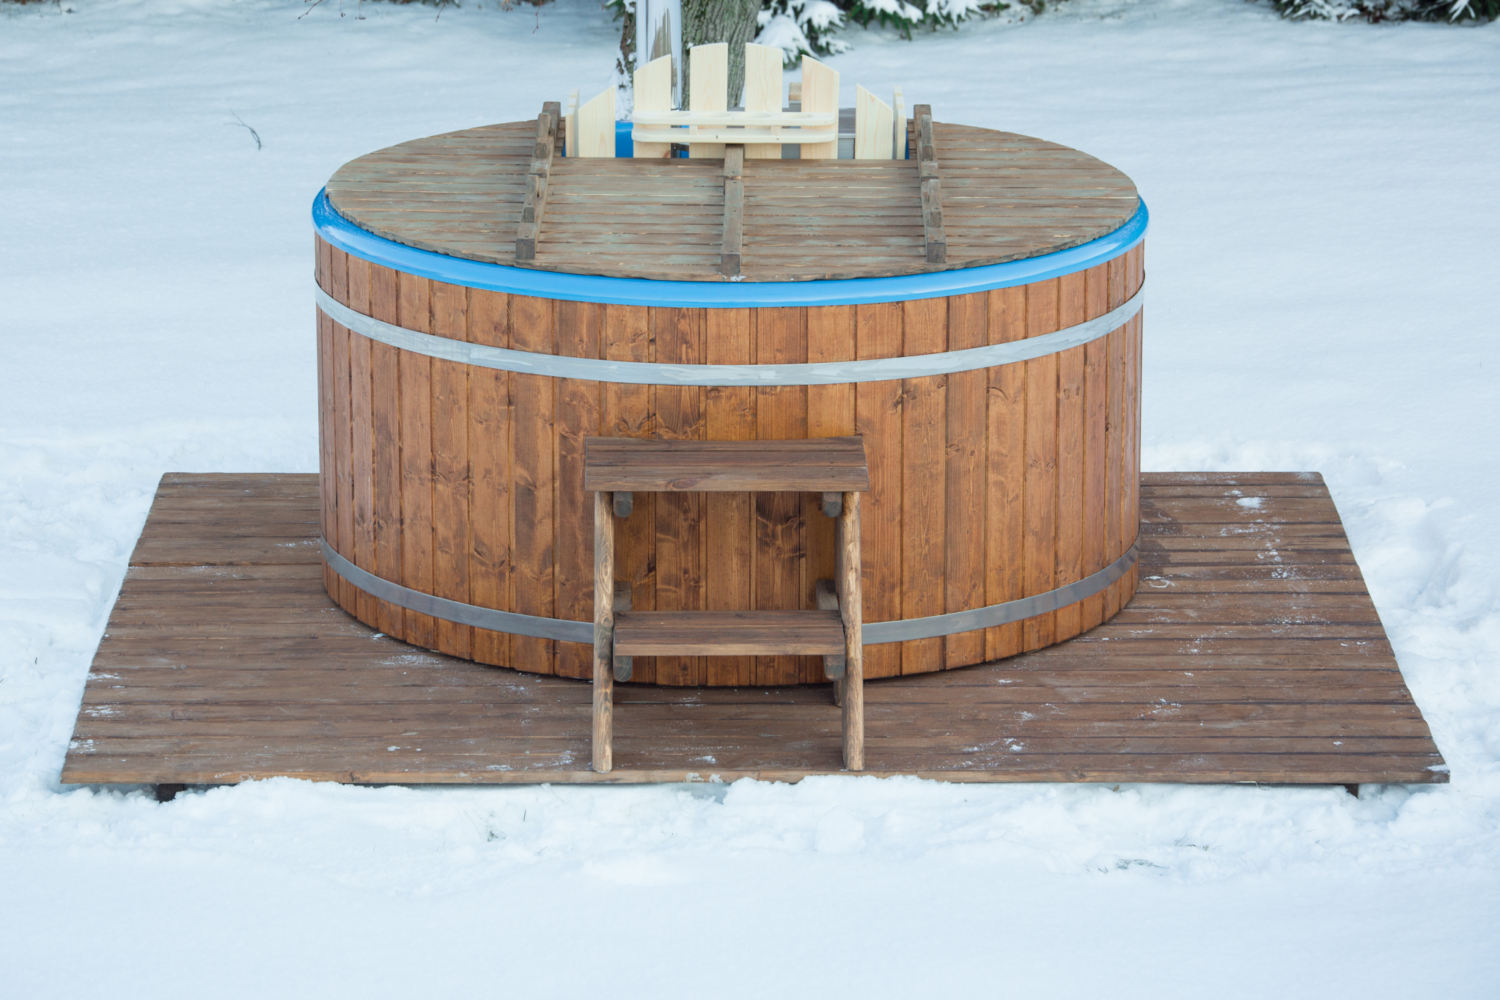 Deluxe wood fired fiberglass round hot tub